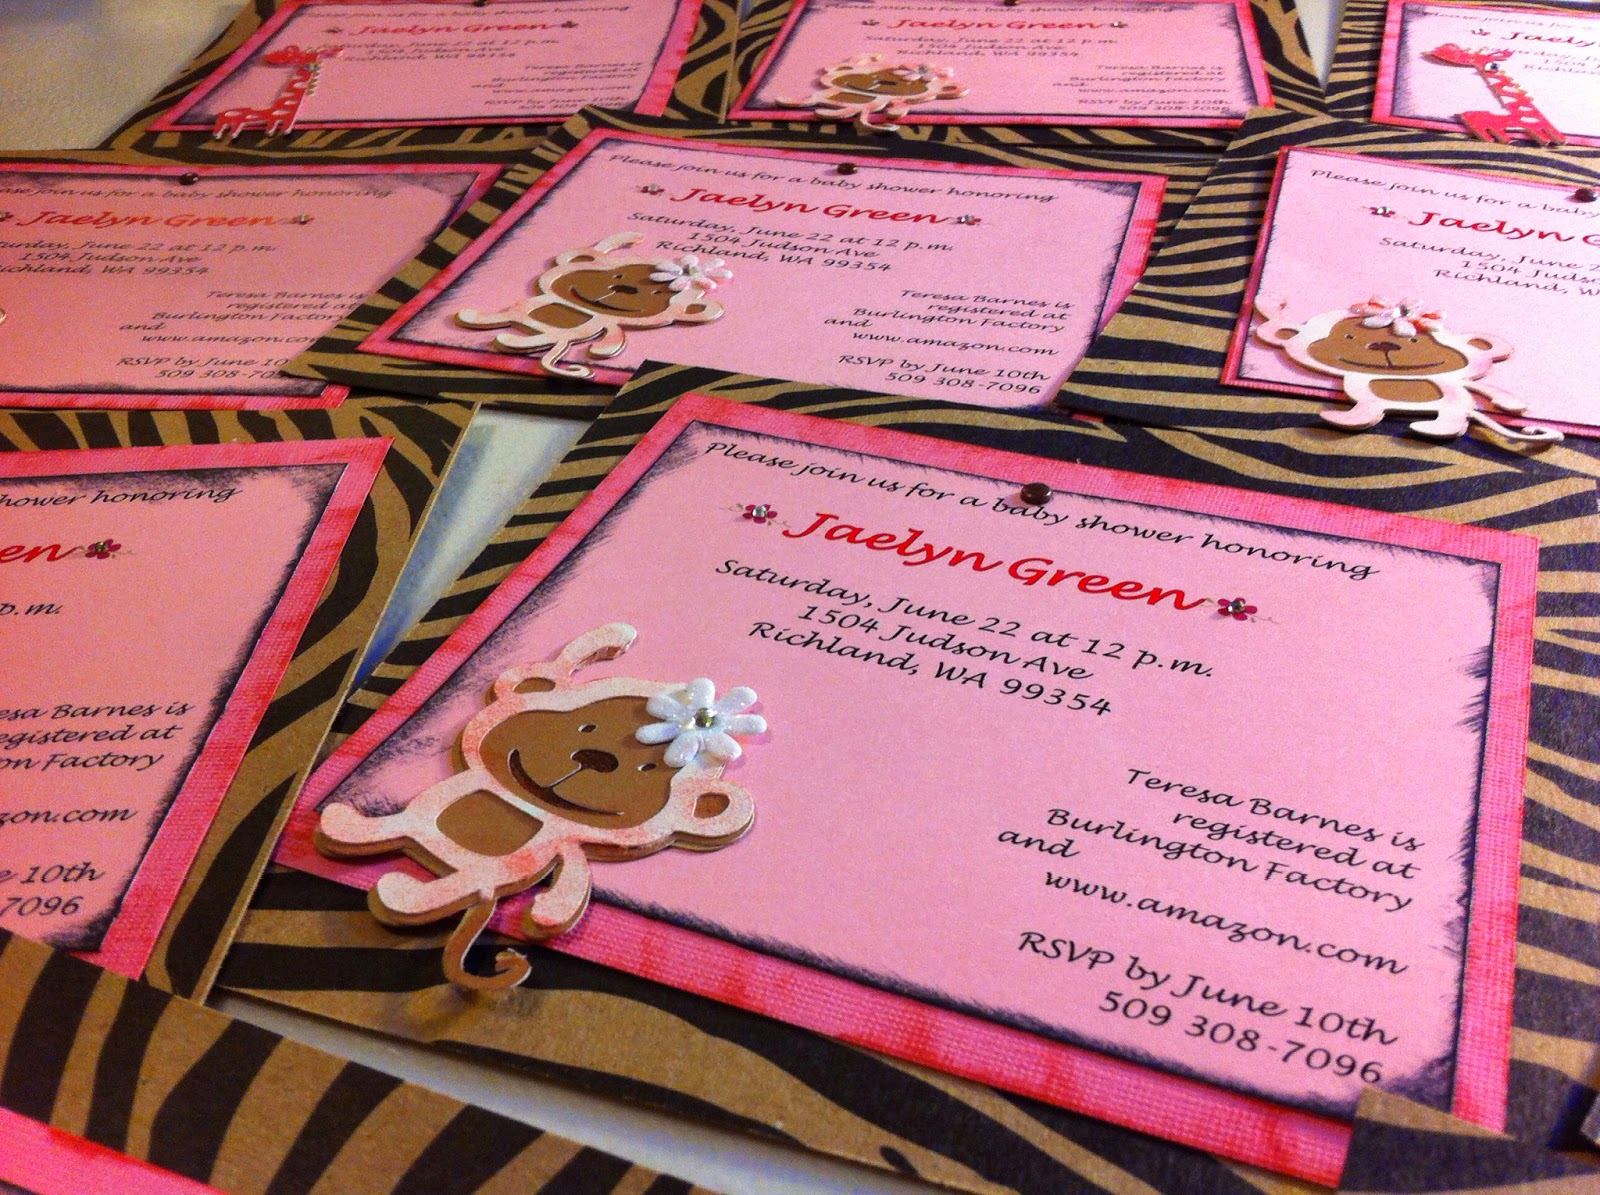 Scrapbook ideas for baby girl - Scrapbooking With Angela Johnson Girl Baby Shower Ideas And More Ideas